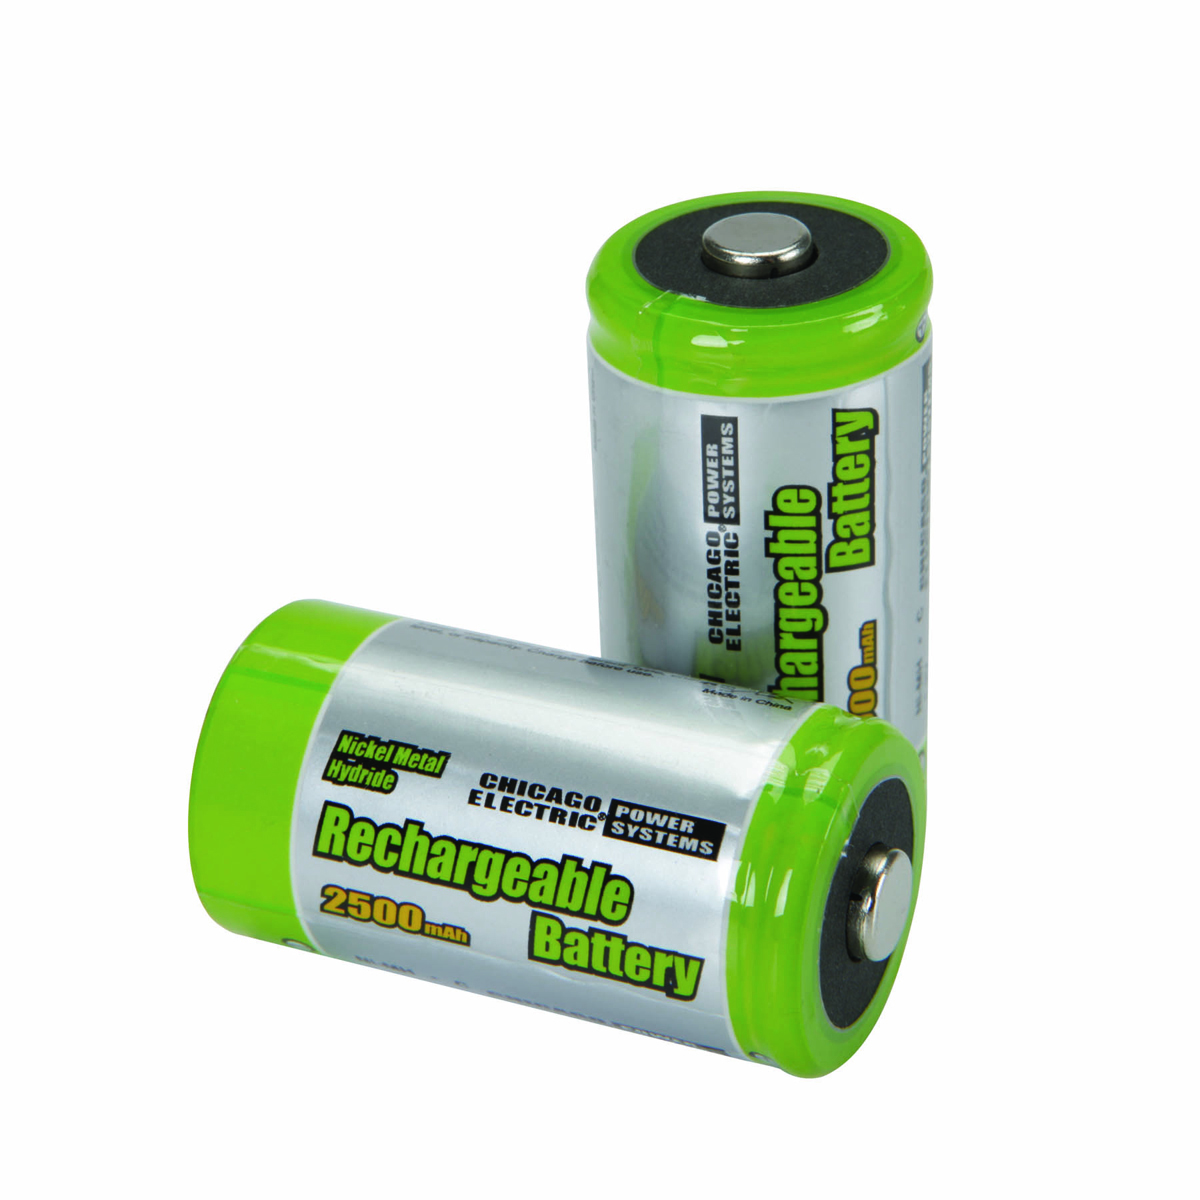 Rechargeable Batteries - Buy rechargeable batteries.